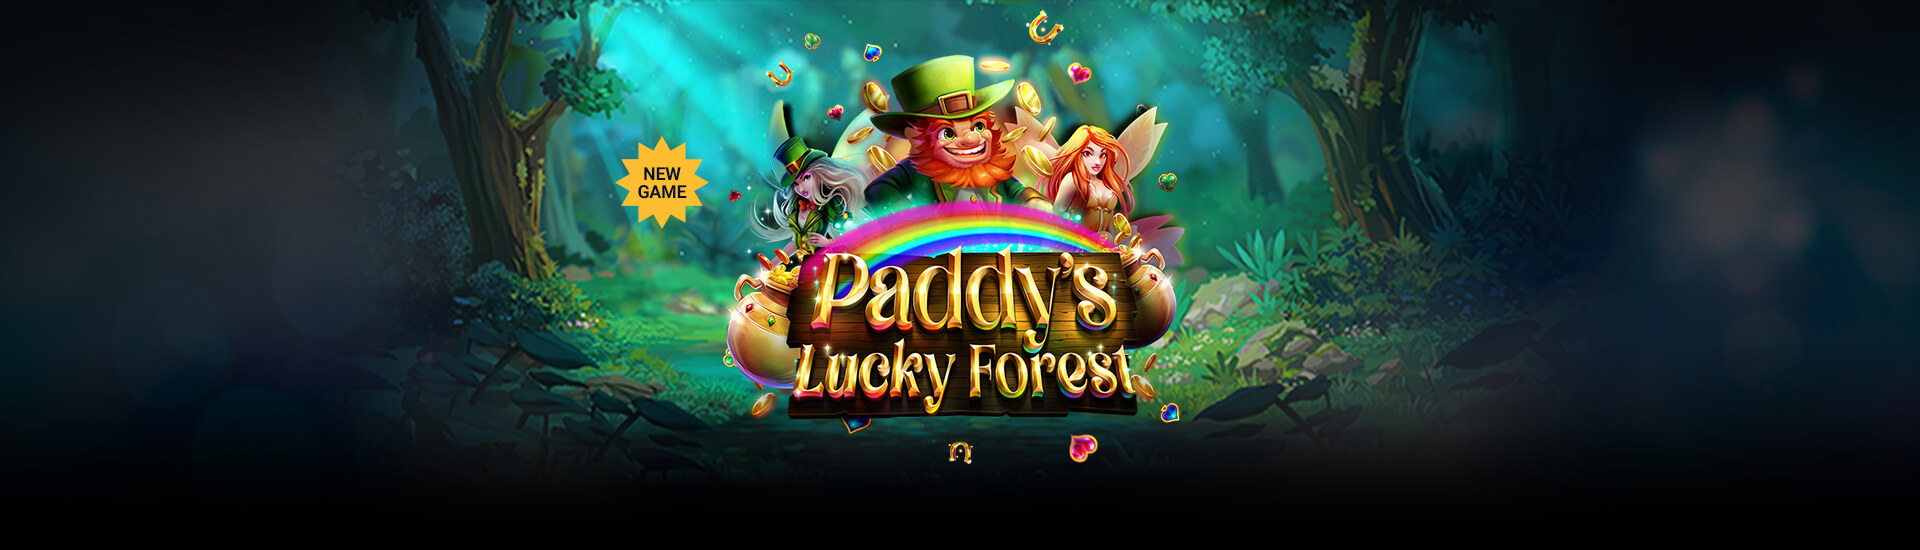 Paddys Lucky Forest